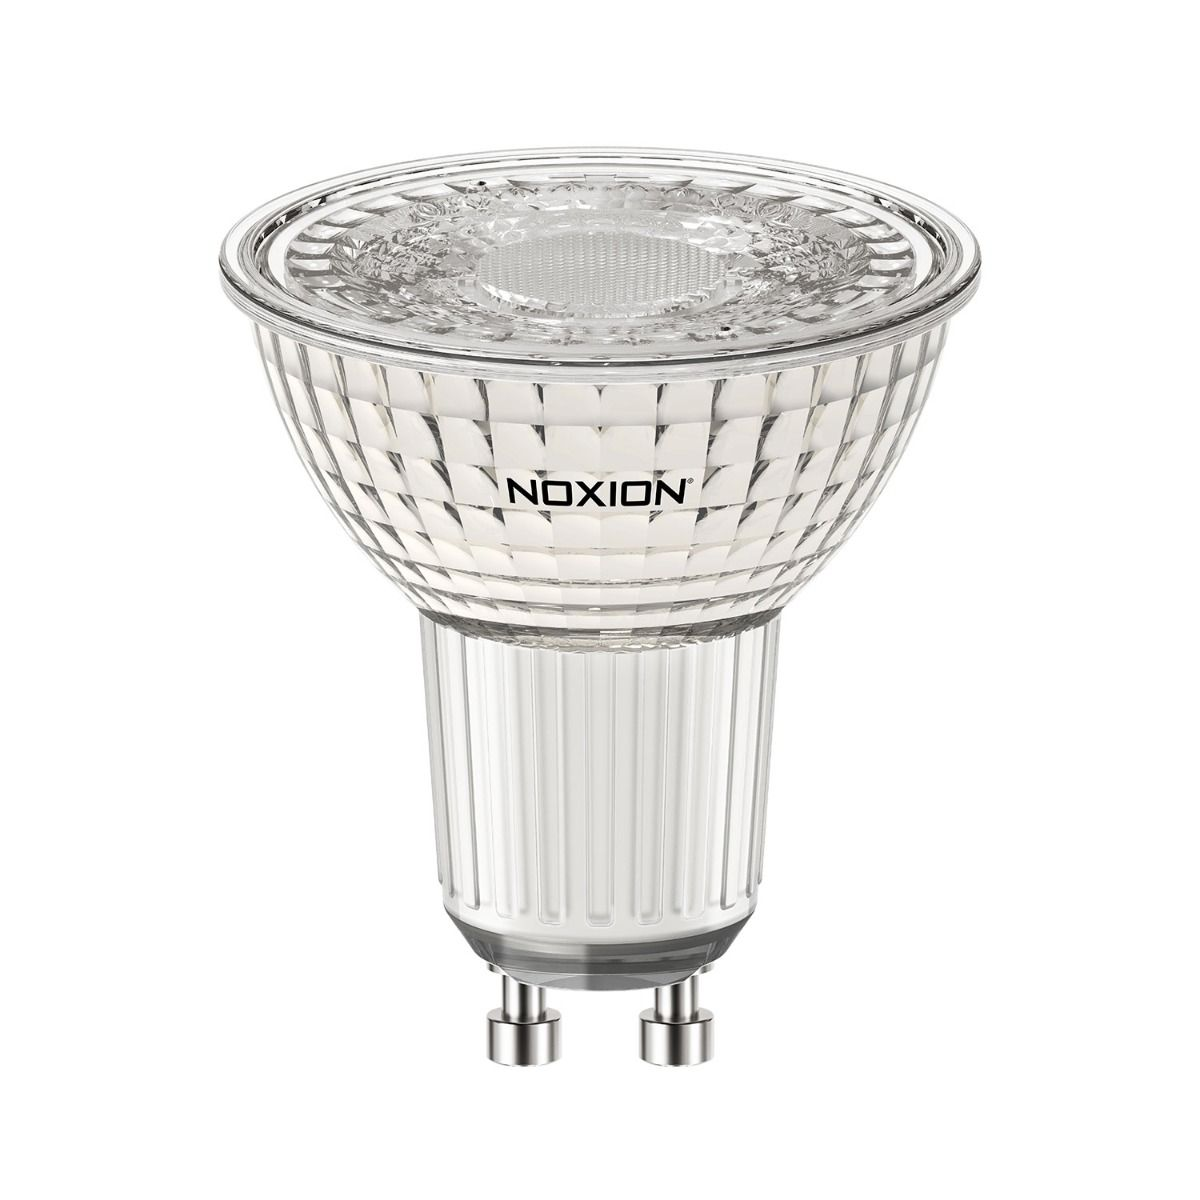 Noxion LED Spot PerfectColor GU10 5.5W 927 60D 430lm | Dimmable - Replacer for 50W